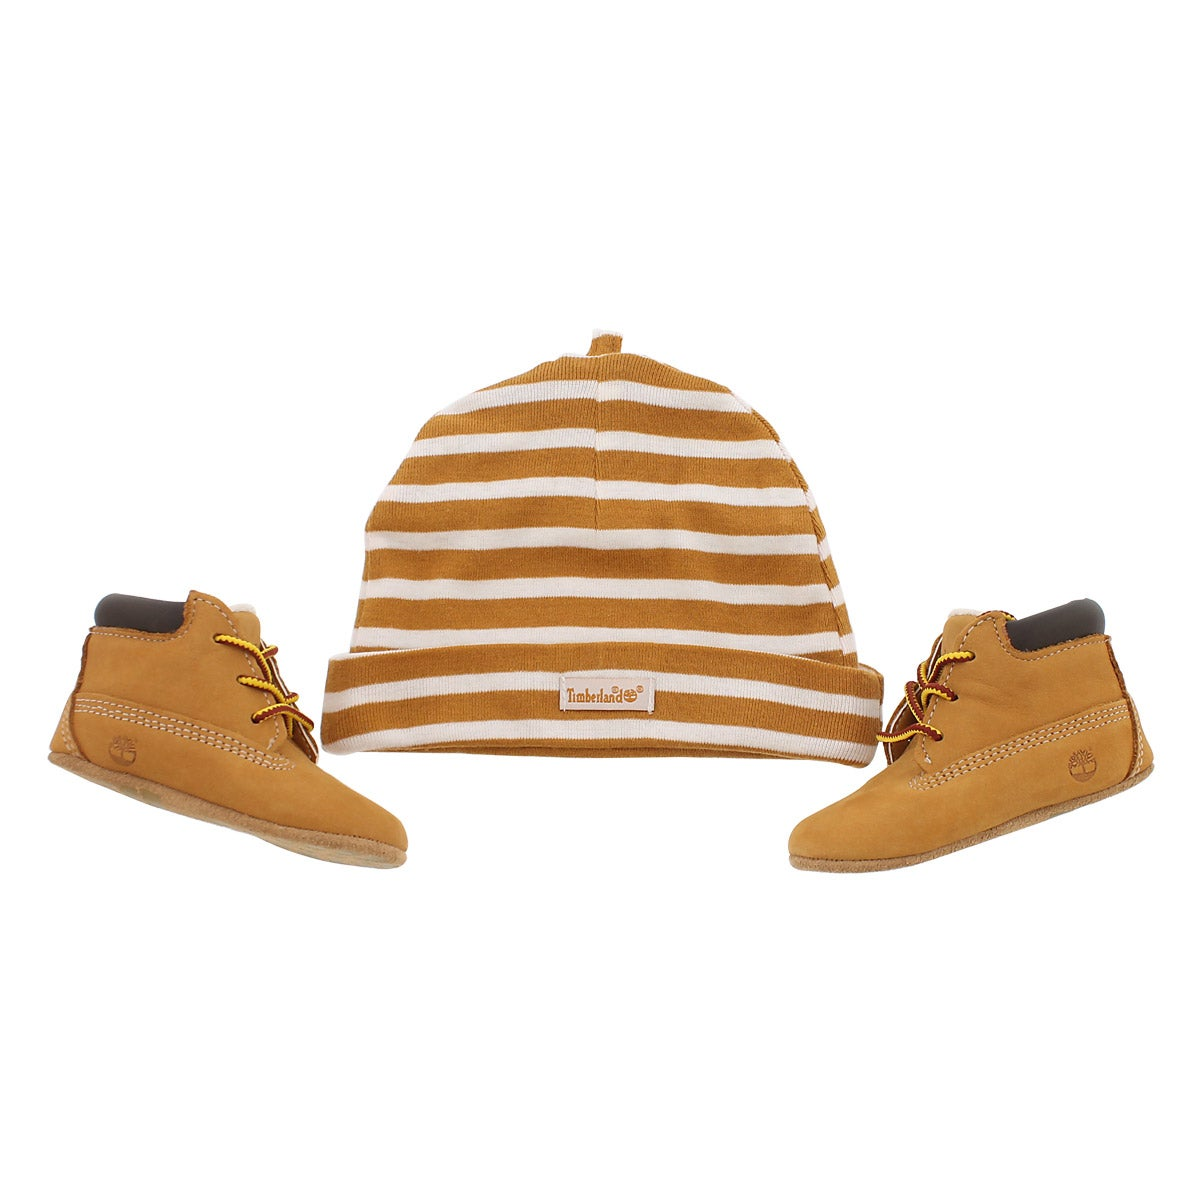 Infs wheat Crib Bootie with hat